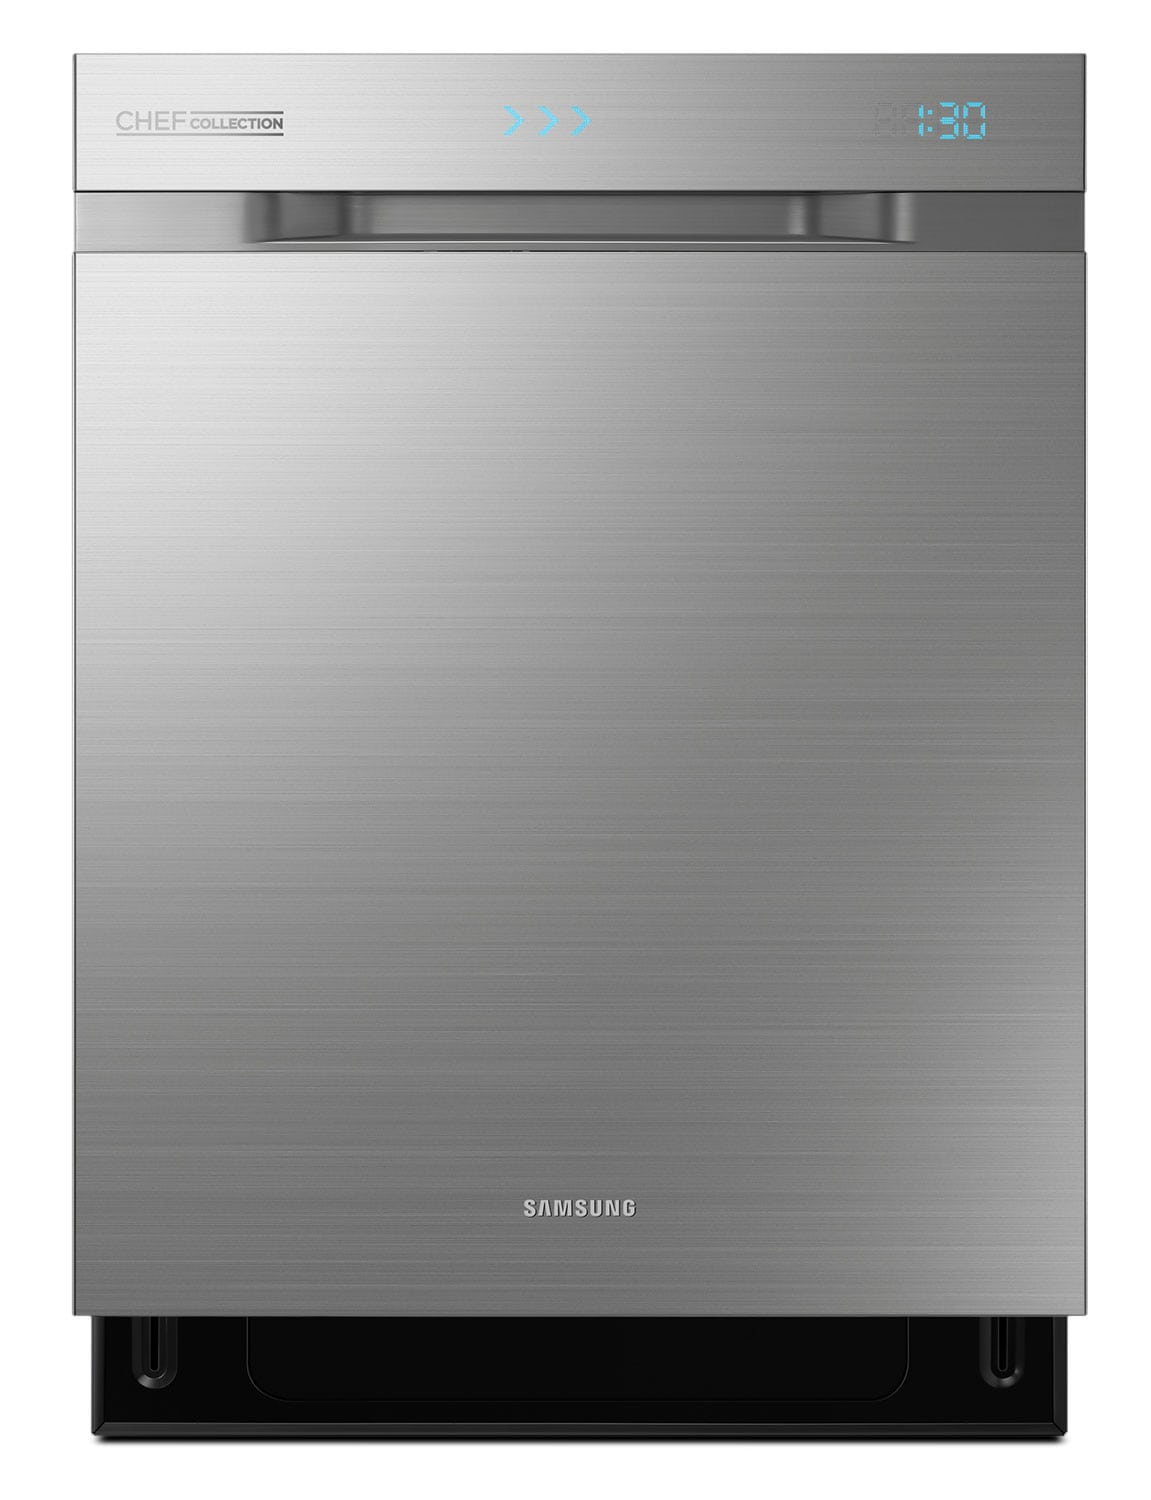 Samsung Chef Collection Built-in Dishwasher – DW80H9970US/AC